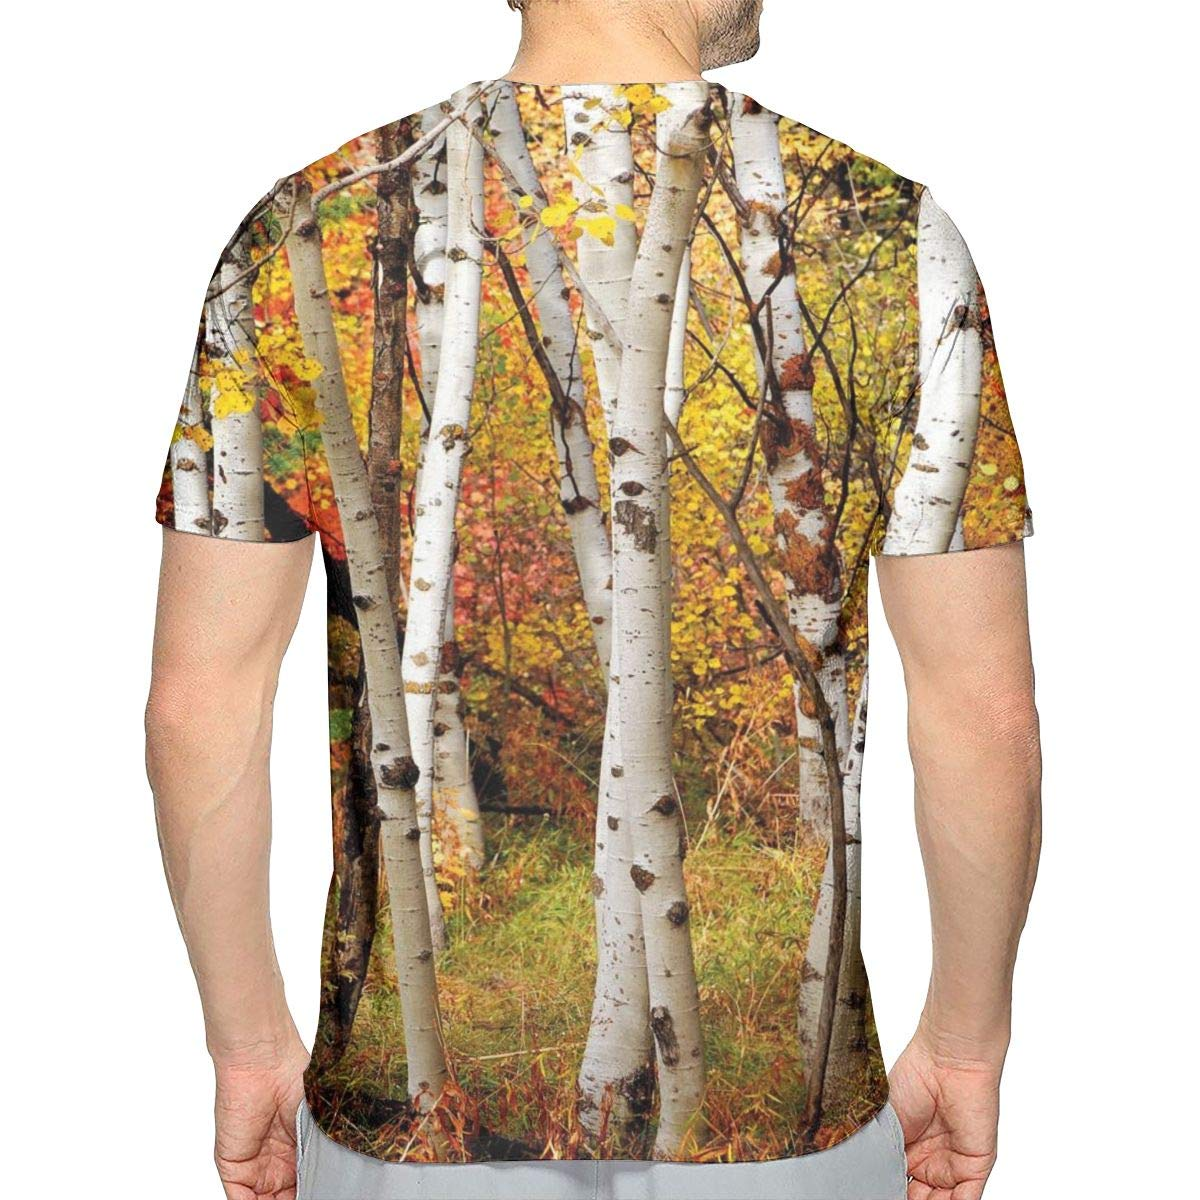 8654e6c7 lsrIYzy 3D Printed T Shirts, White Fall Birch Trees with Autumn Leaves  Growth Wilderness Ecology Calm Serene View | Amazon.com